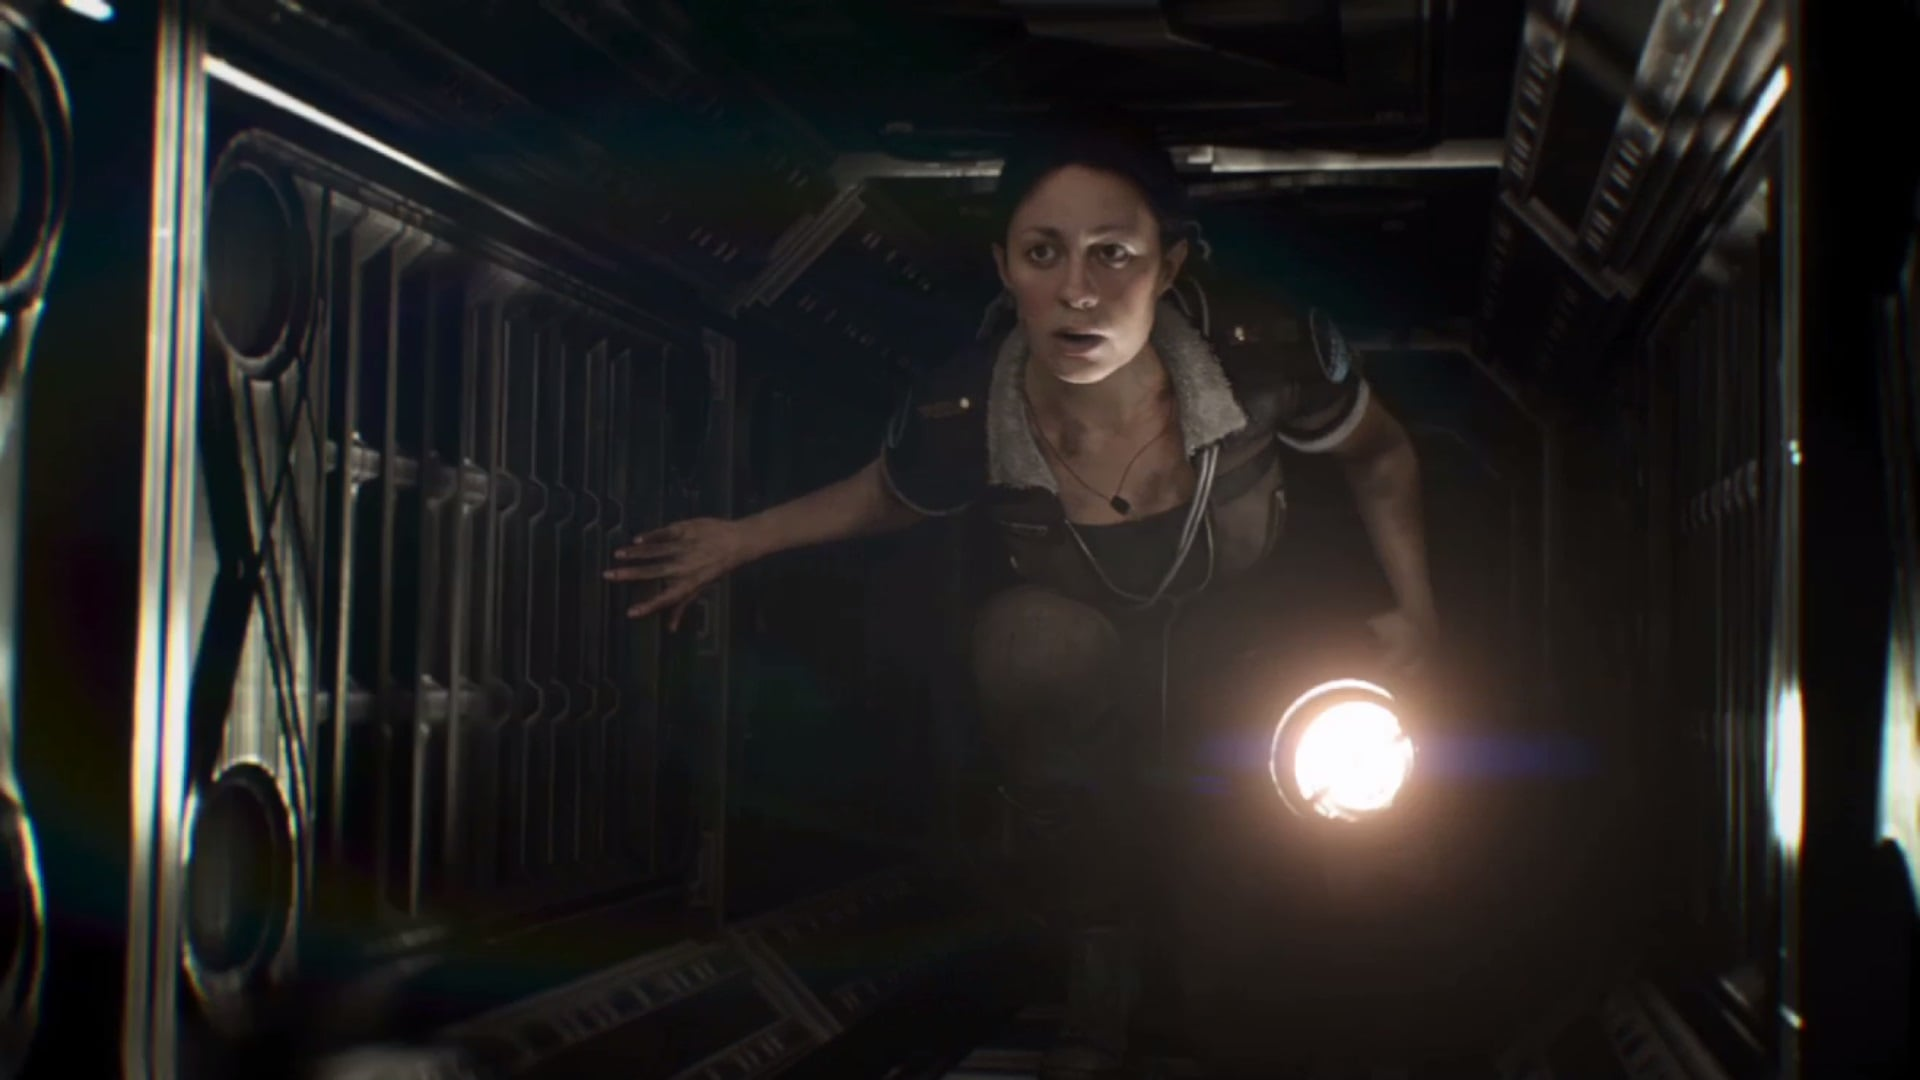 Improvise To Survive In Alien Isolation Trailer